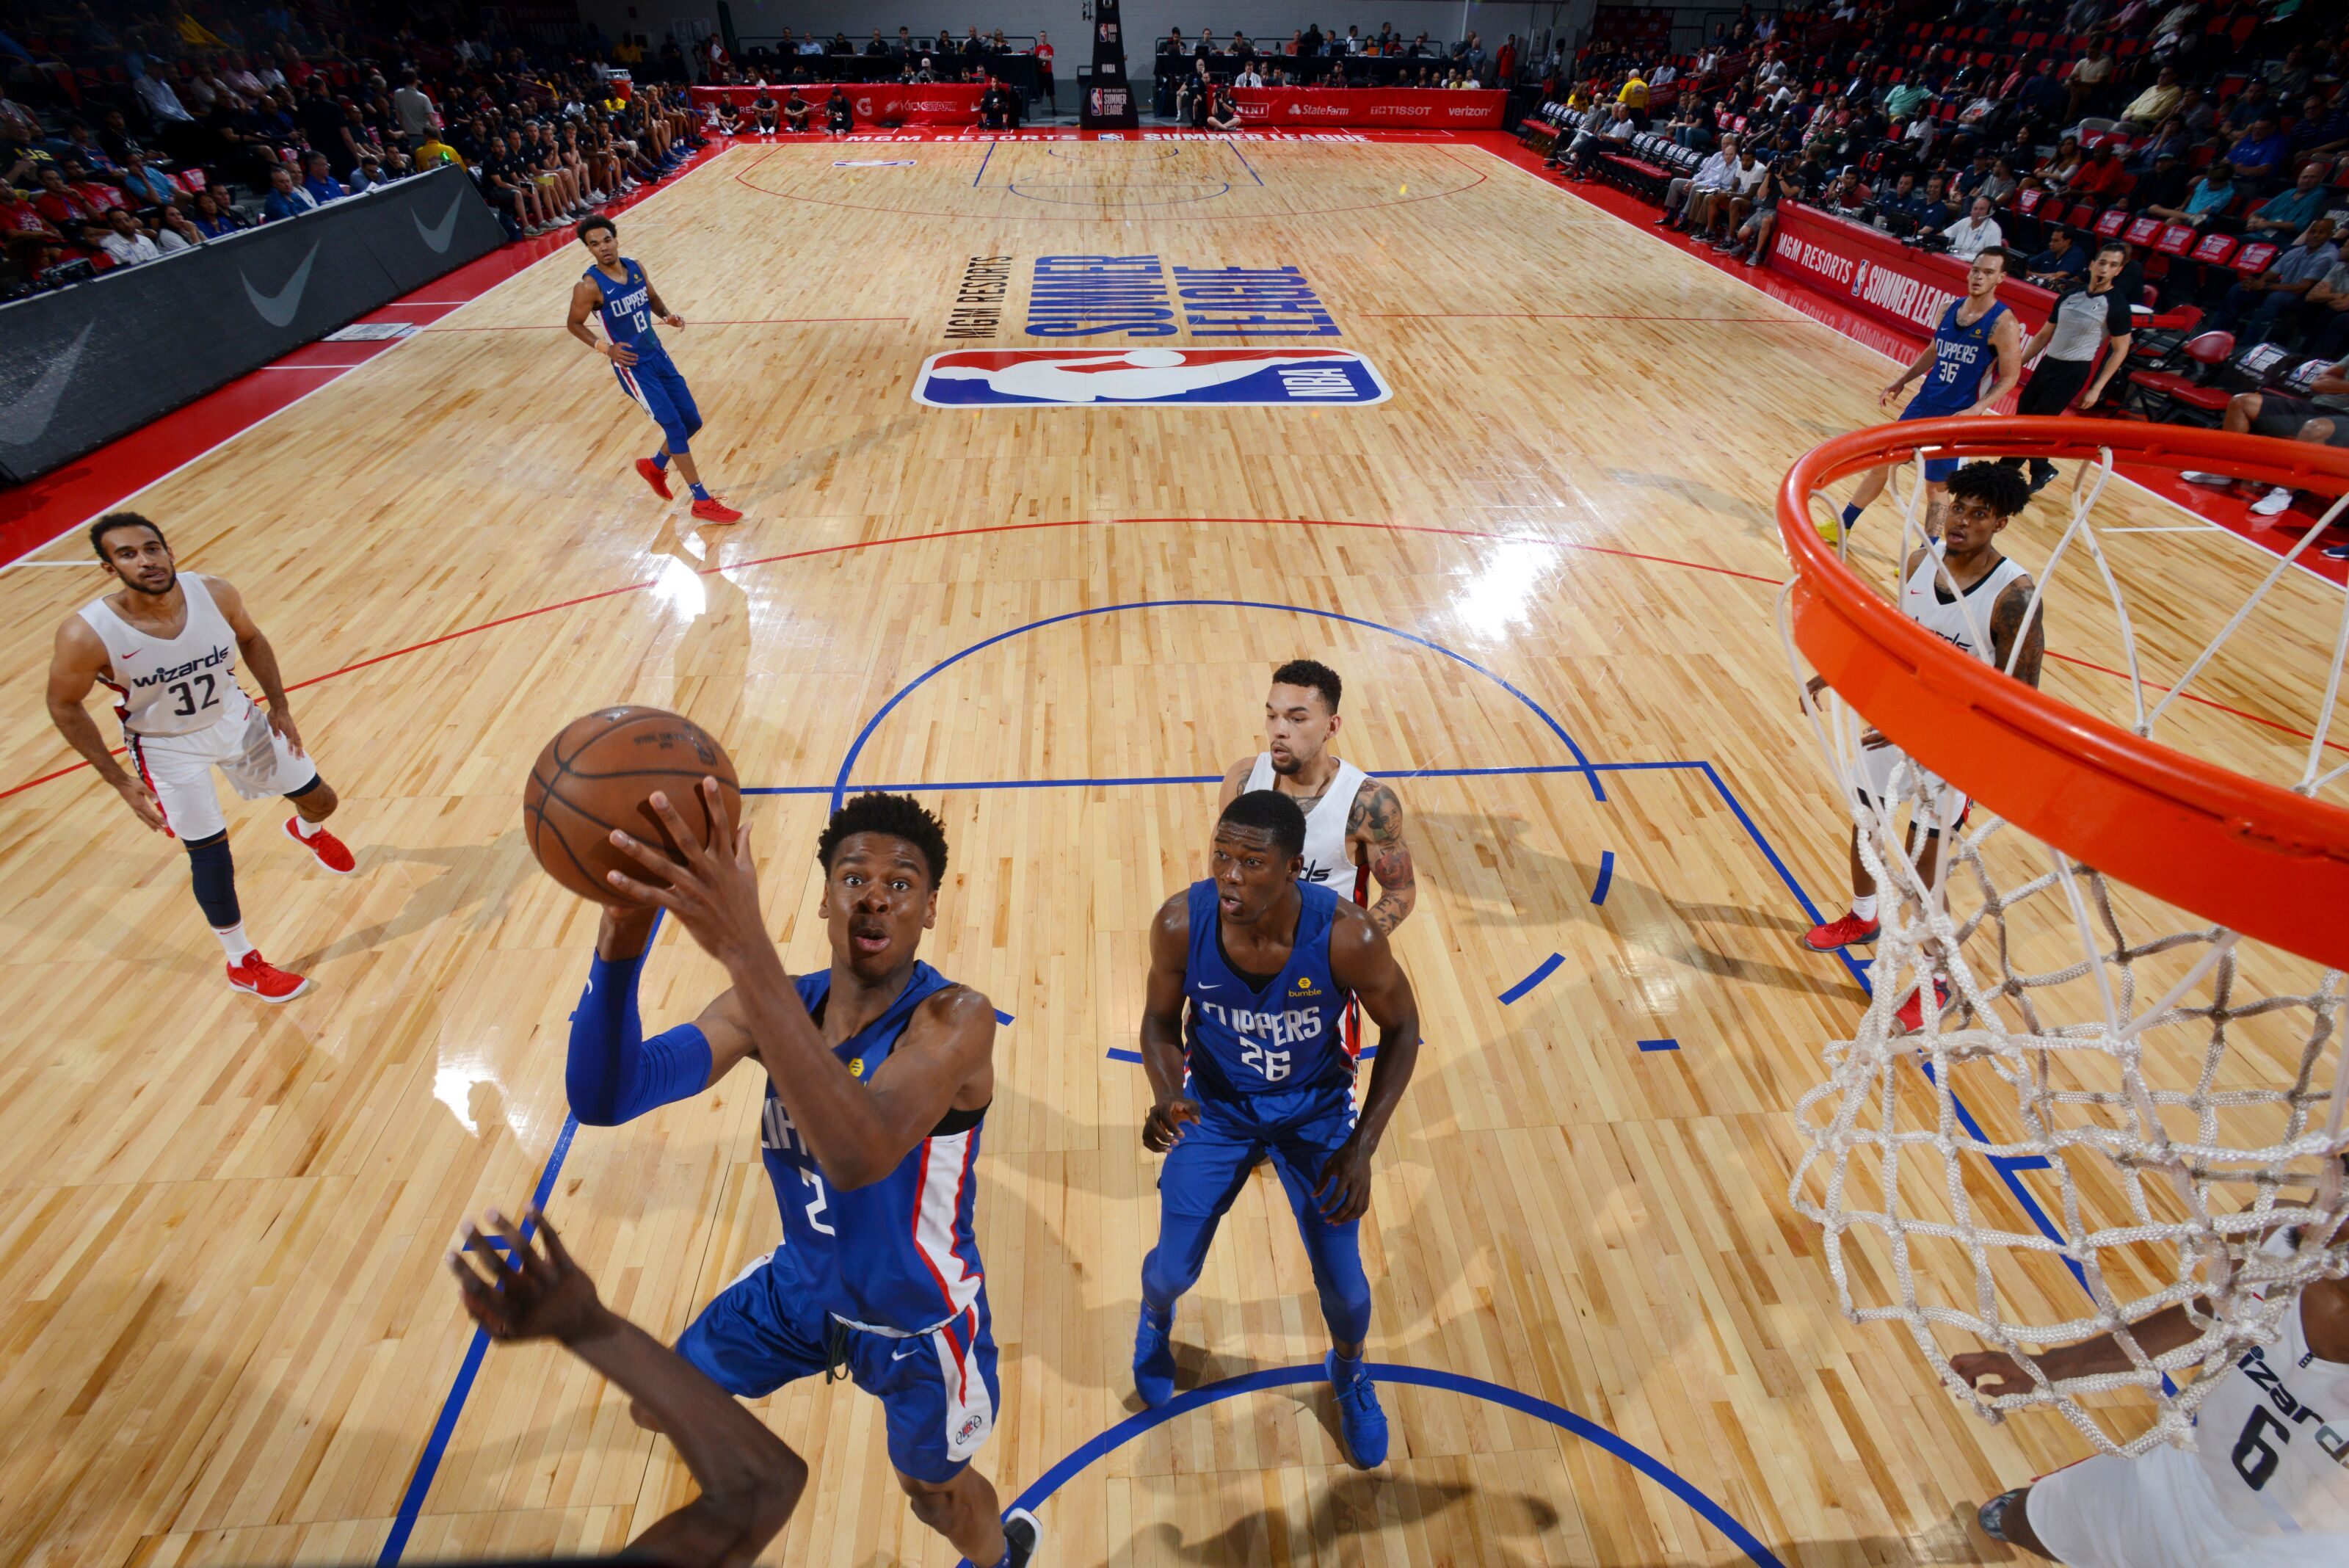 494a68e9d7f Clippers Versus Lakers (Summer League)  3 Things to Watch For